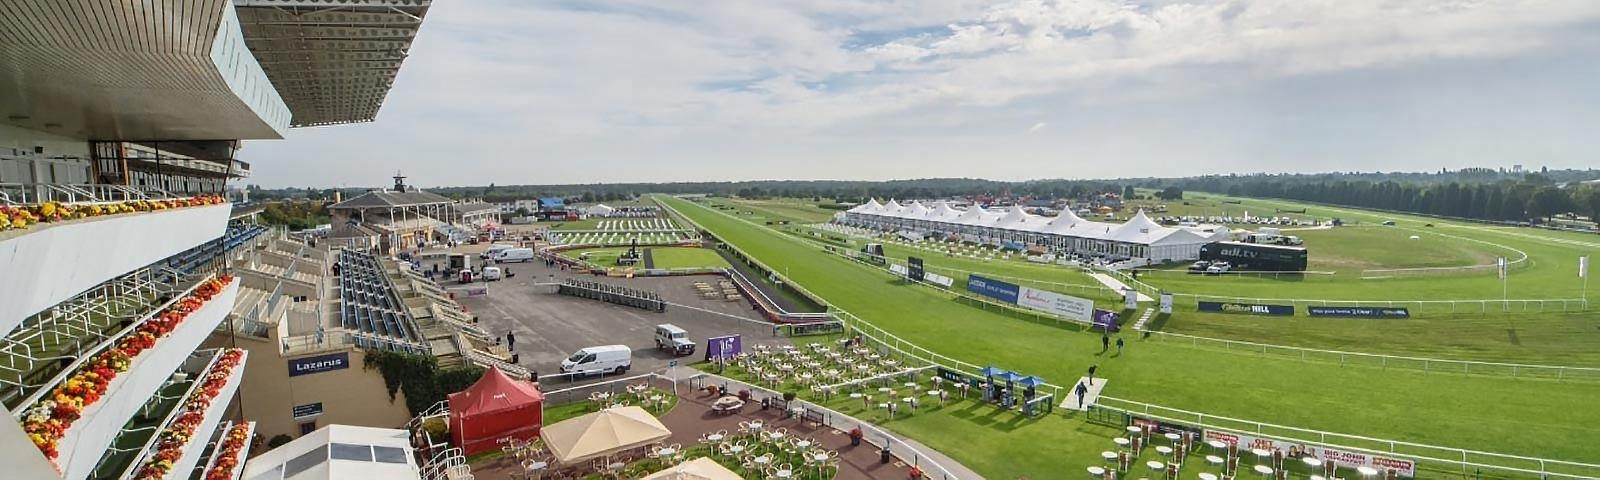 A wide angle view of Doncaster Racecourse